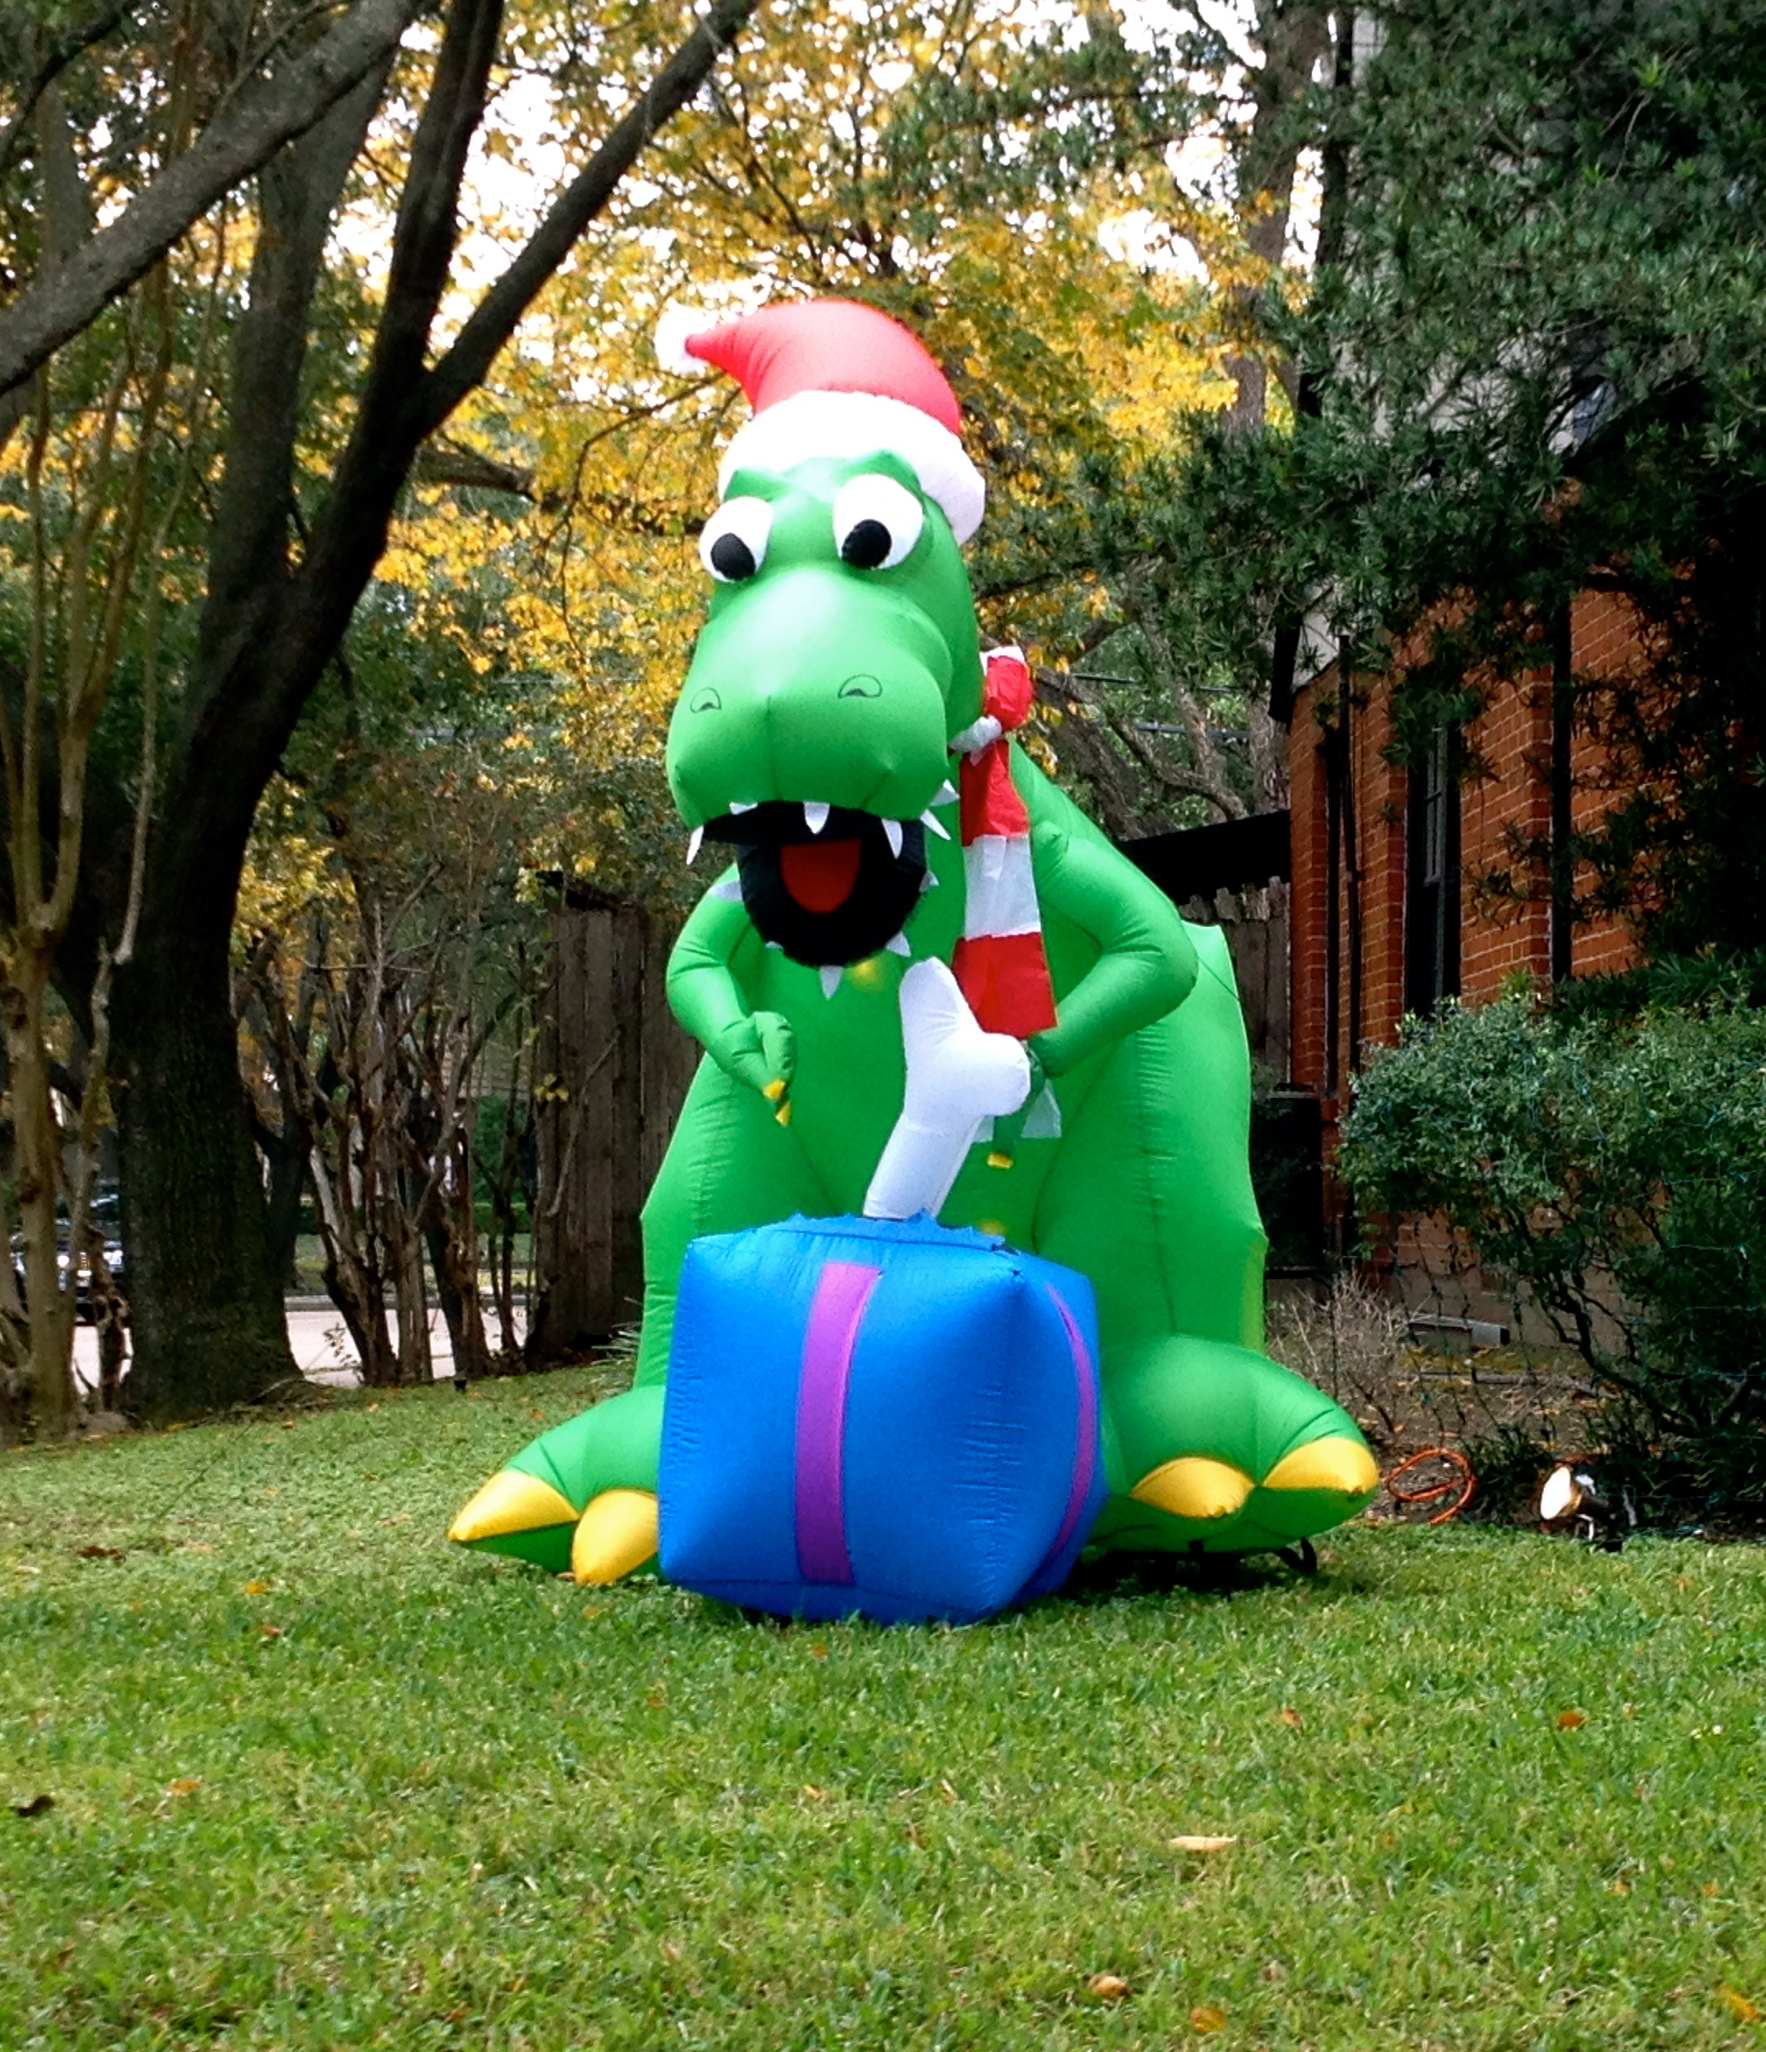 inflatable christmas dinosaur or dragon yard decoration - Dinosaur Christmas Decorations